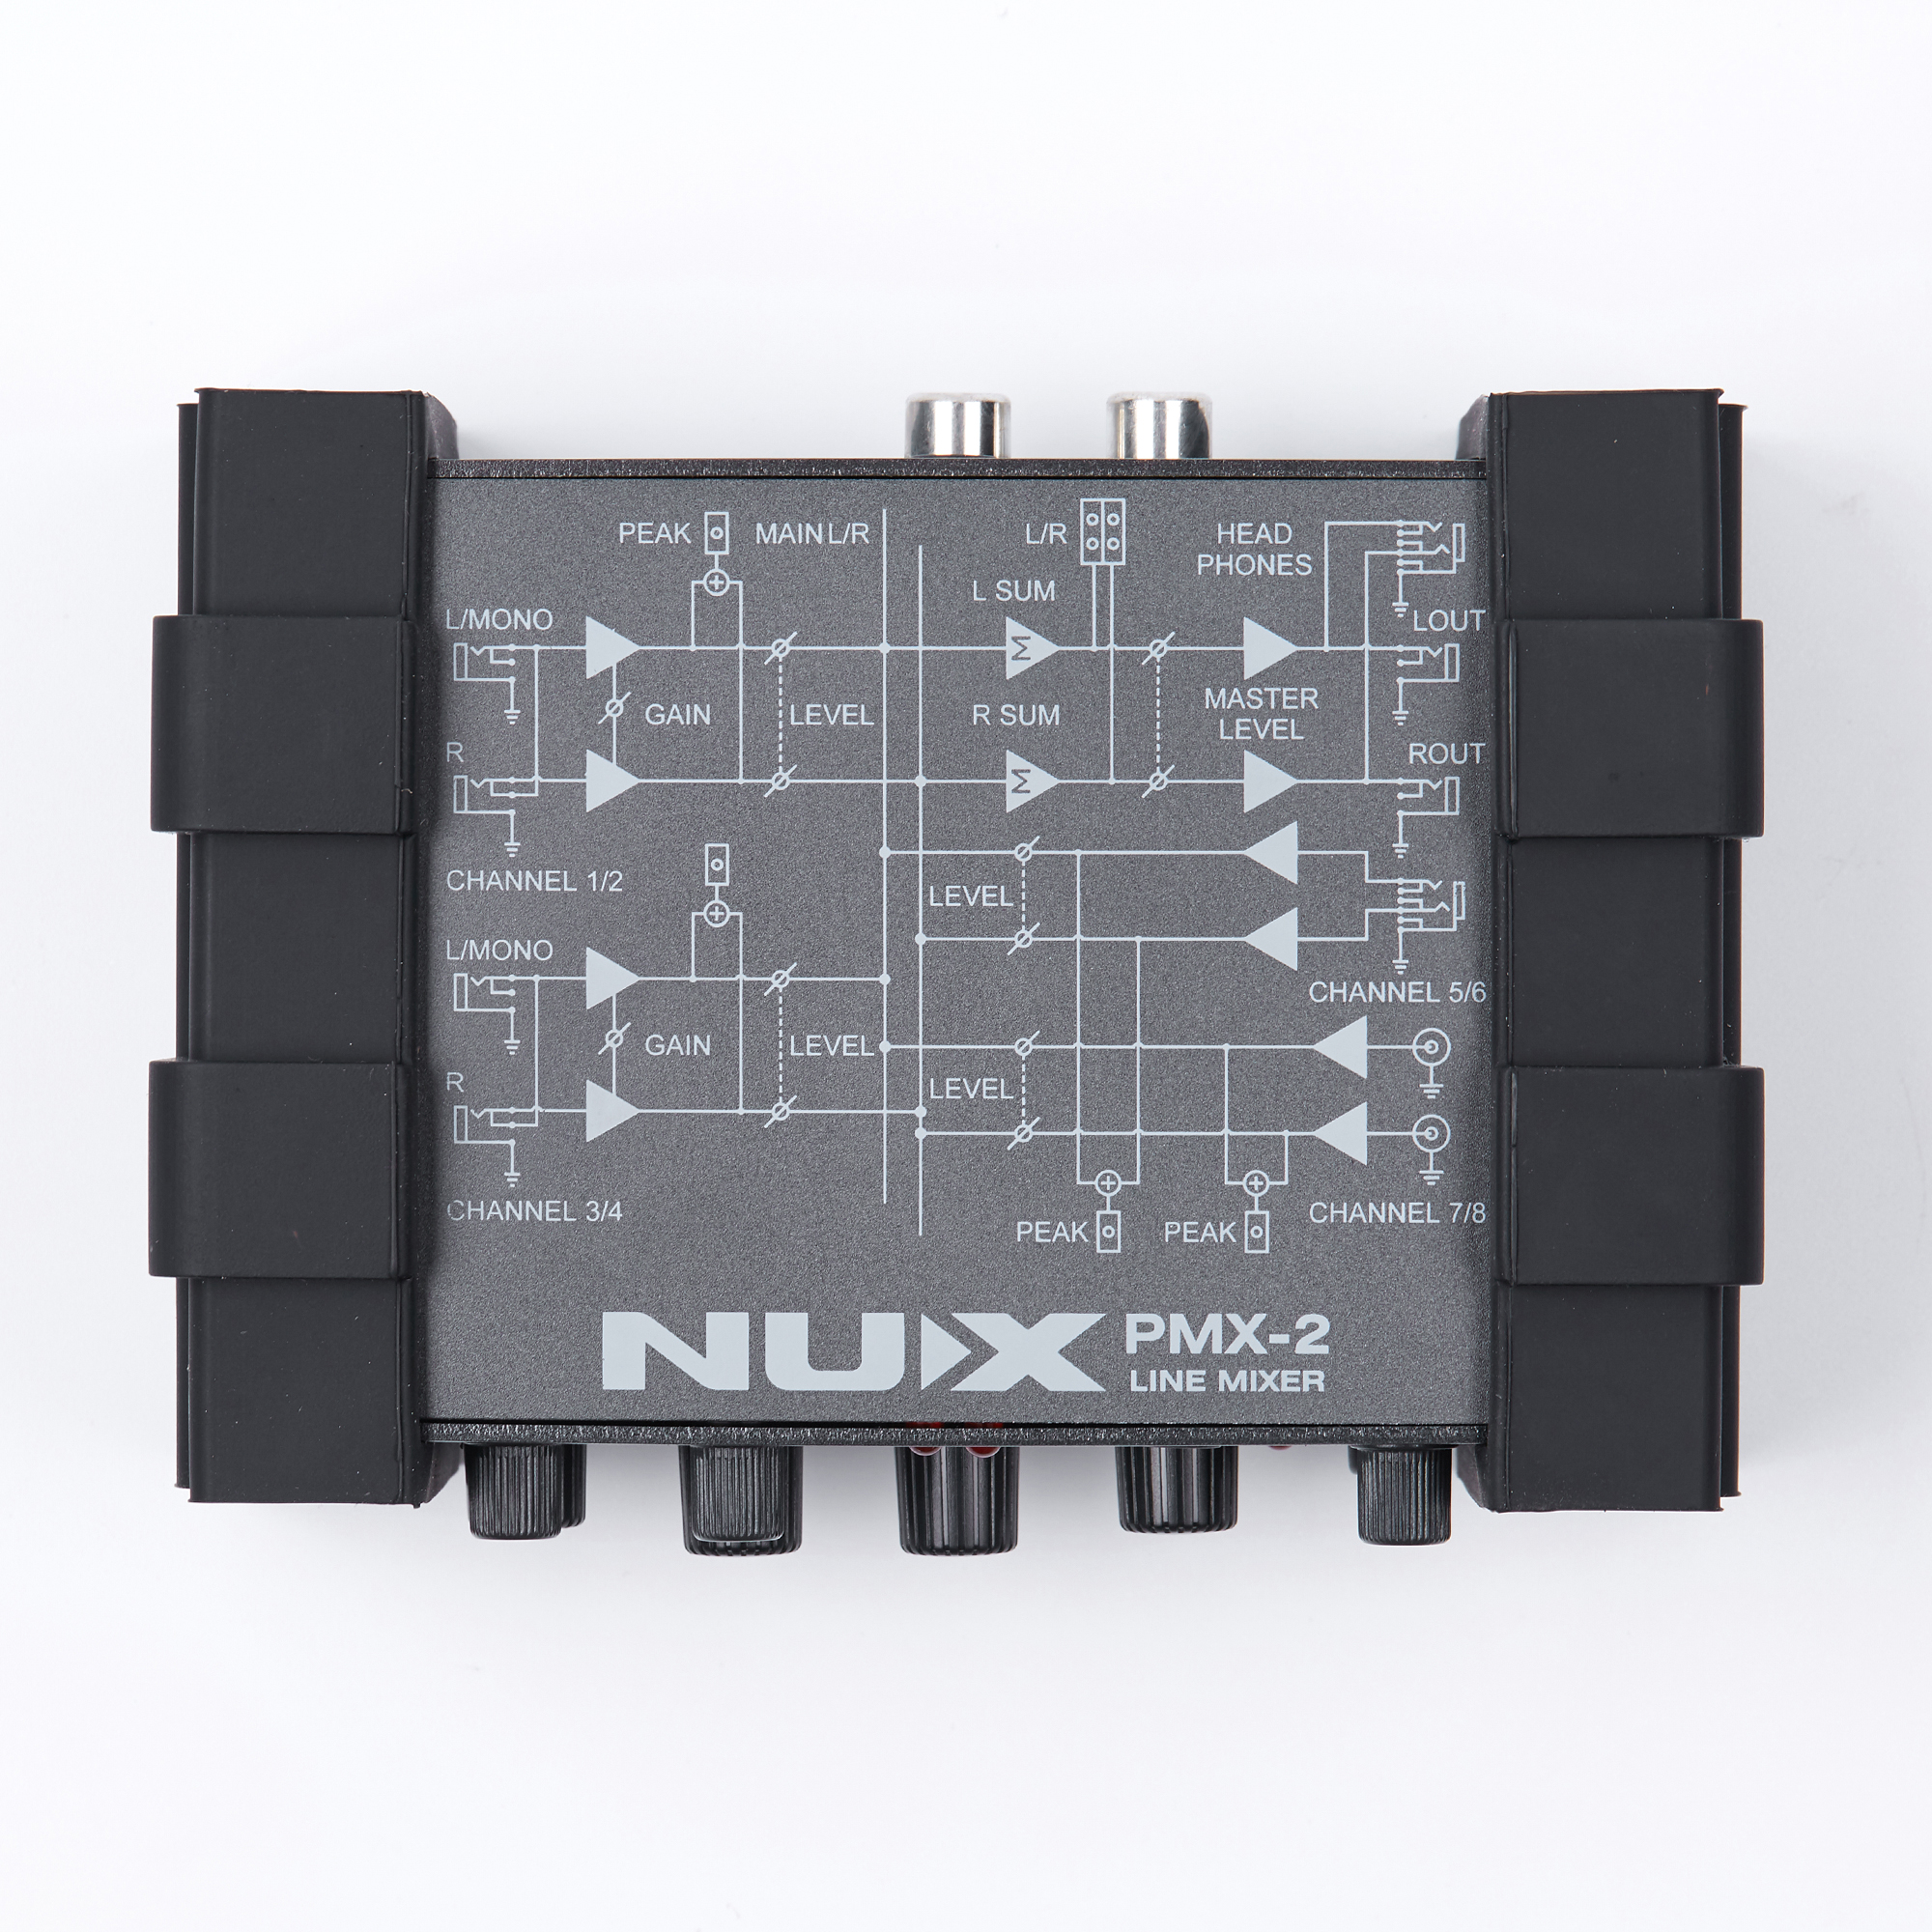 Gain Control 8 Inputs and 2 Outputs NUX PMX-2 Multi-Channel Mini Mixer 30 Musical Instruments Accessories for Guitar Bass Player corporate takeovers